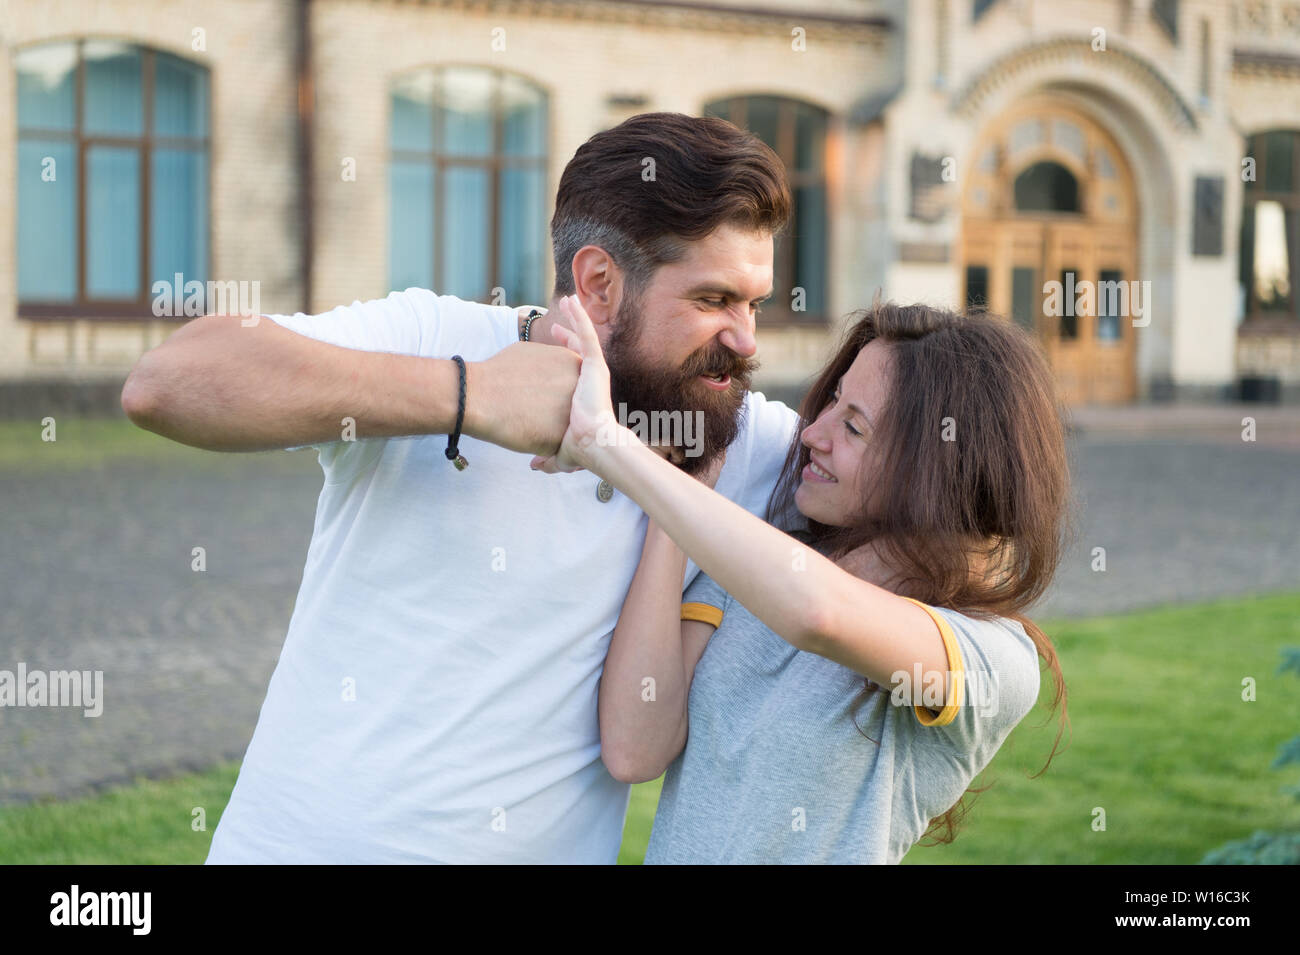 Taking a lot of abuse from him. Bearded man pushing girl using physical abuse in public. Woman experiencing violence and abuse. Domestic violence as a gender-based form of extreme human rights abuse. - Stock Image